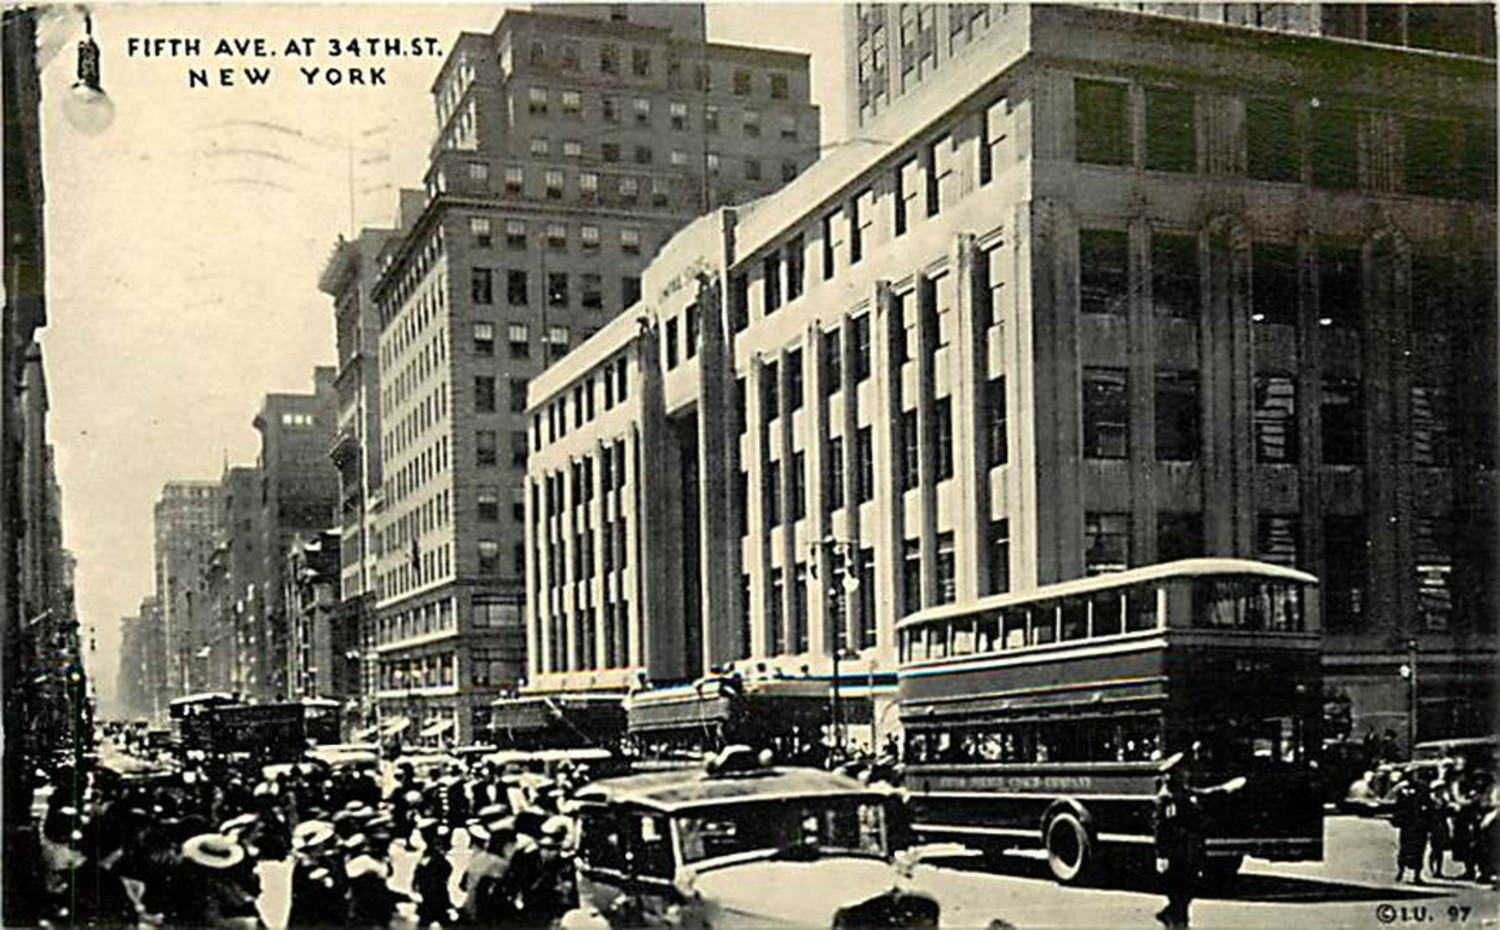 In just 20 years Fifth Avenue has changed dramatically. Looking south on Fifth Avenue from 34th Street in 1935, the Waldorf-Astoria is gone and the Empire State Building is in its place. The Empire State is directly behind the double deck Fifth Avenue bus. Pedestrian and vehicular traffic is substantial and in front of the bus a policeman deals with the congestion.